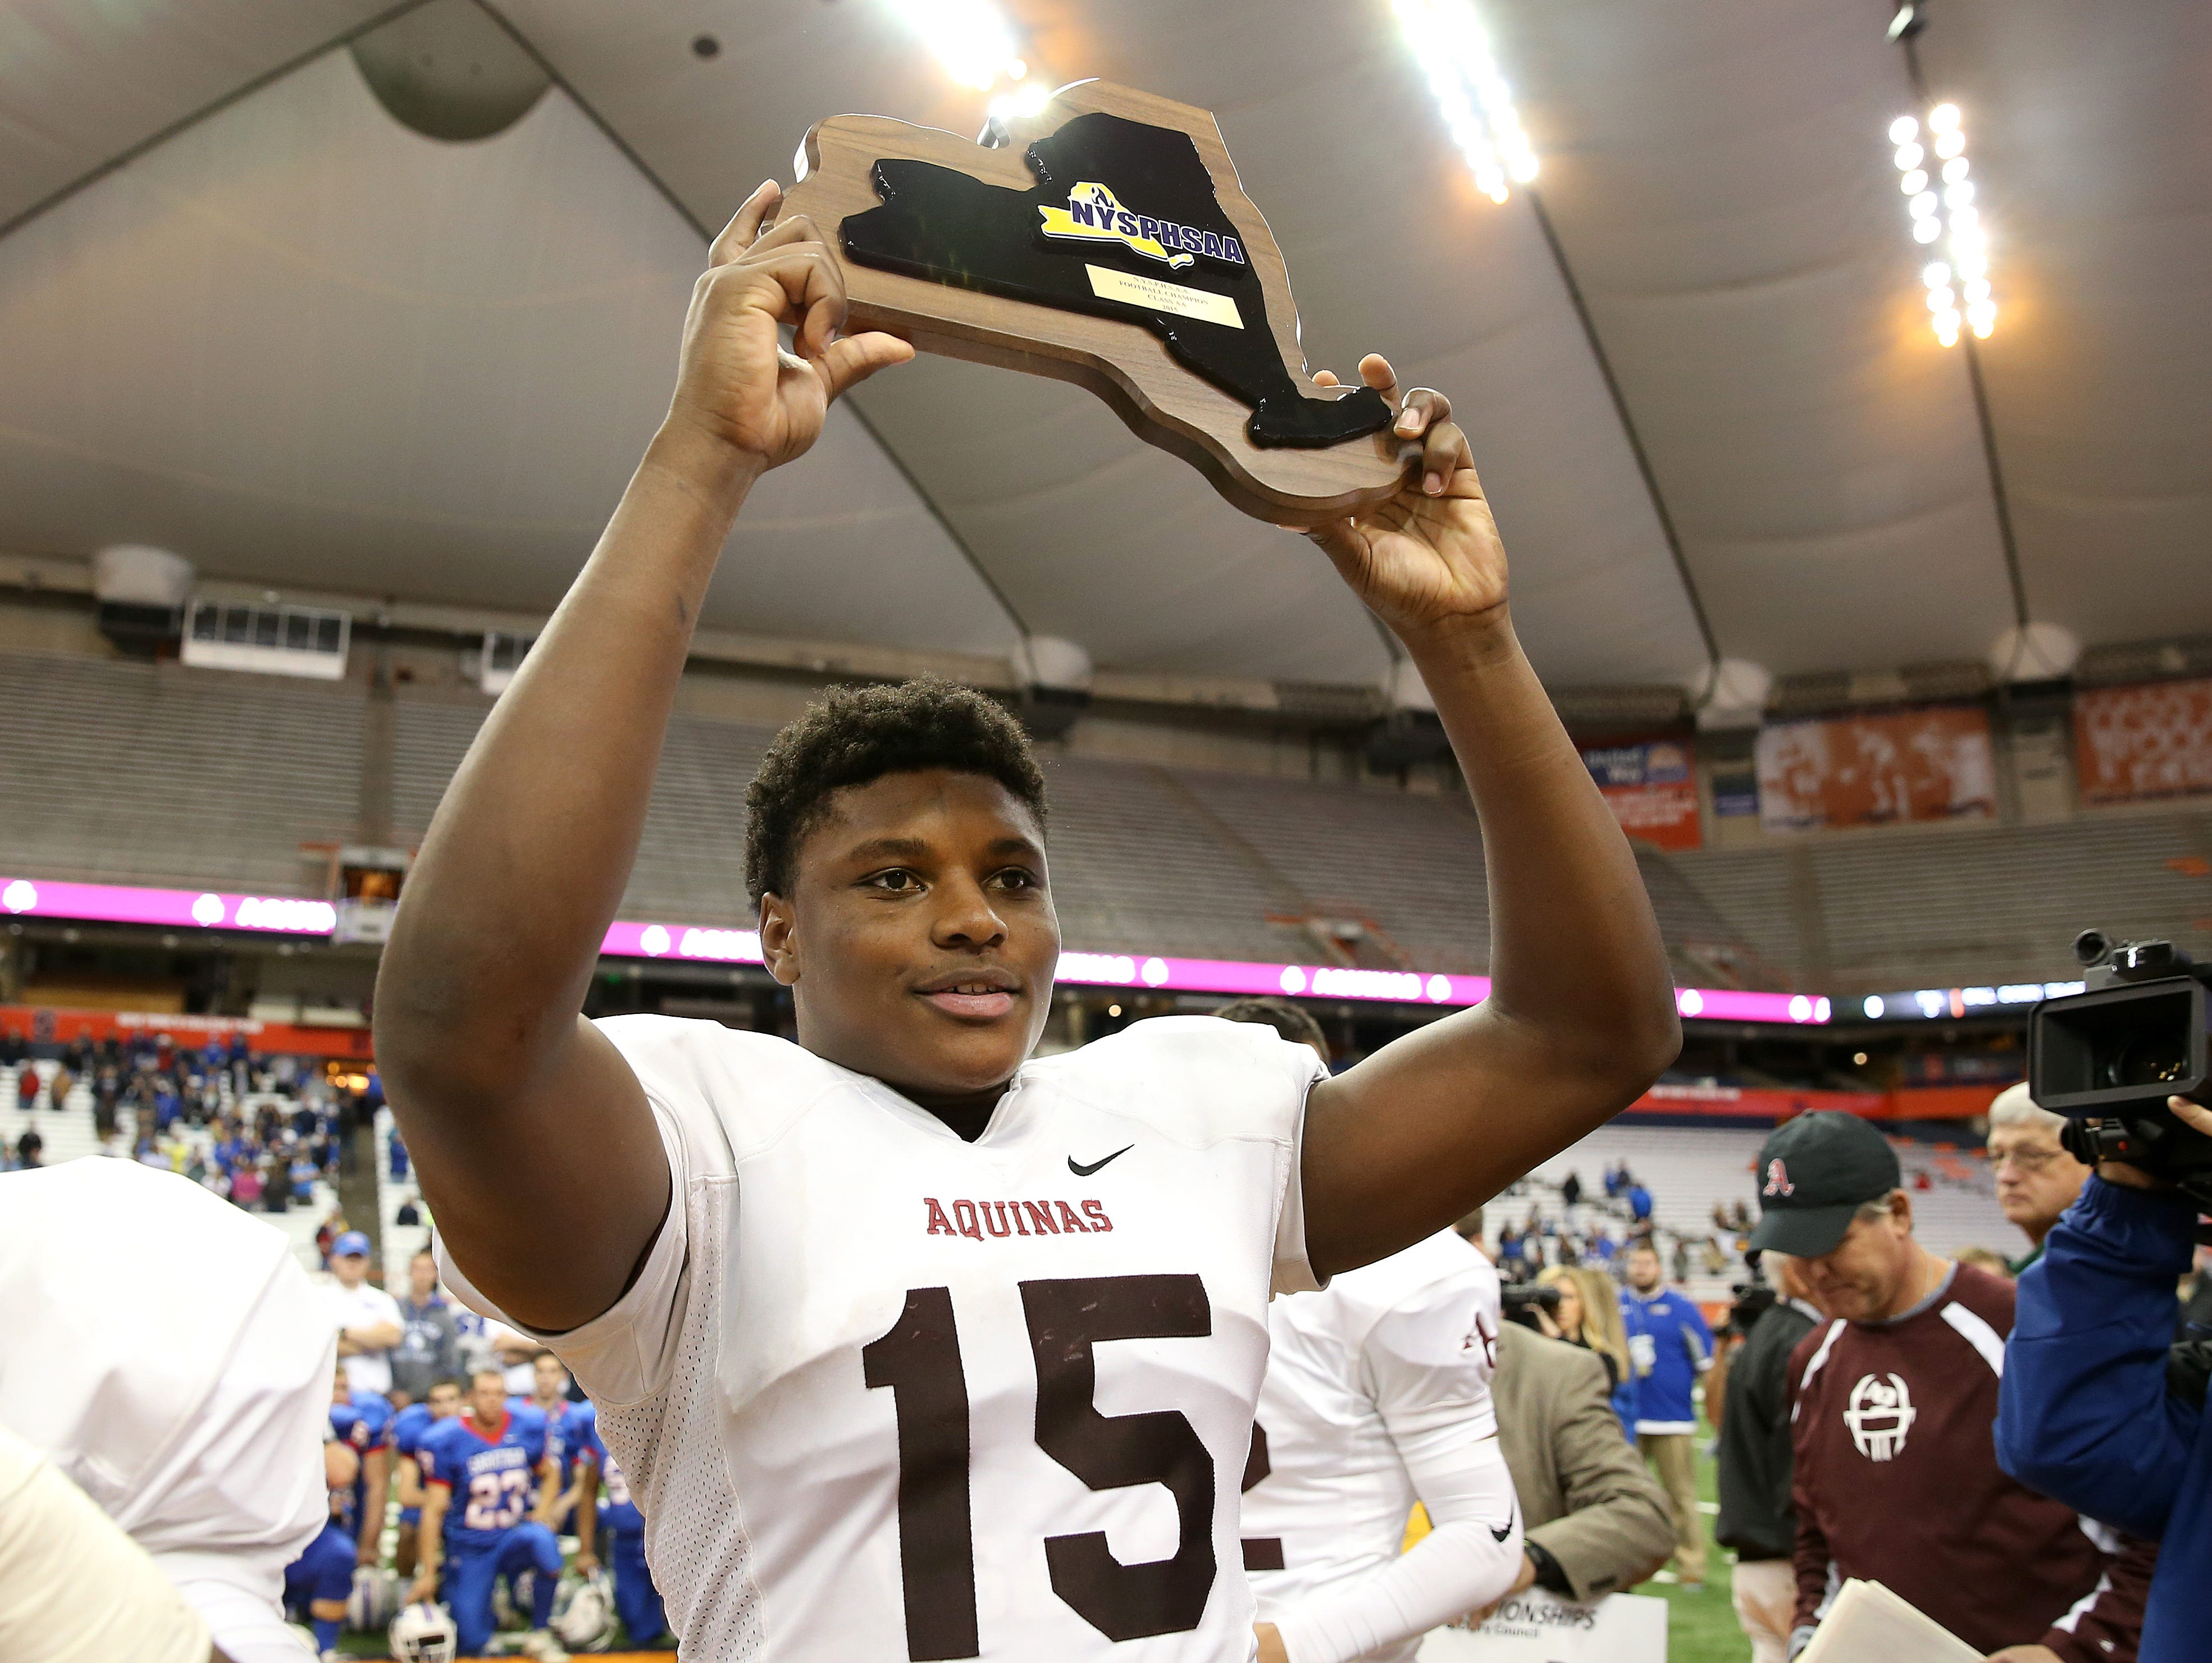 Aquinas' Jamir Jones holds up the championship plaque after beating Saratoga Springs 44-19 to win State Class AA title.